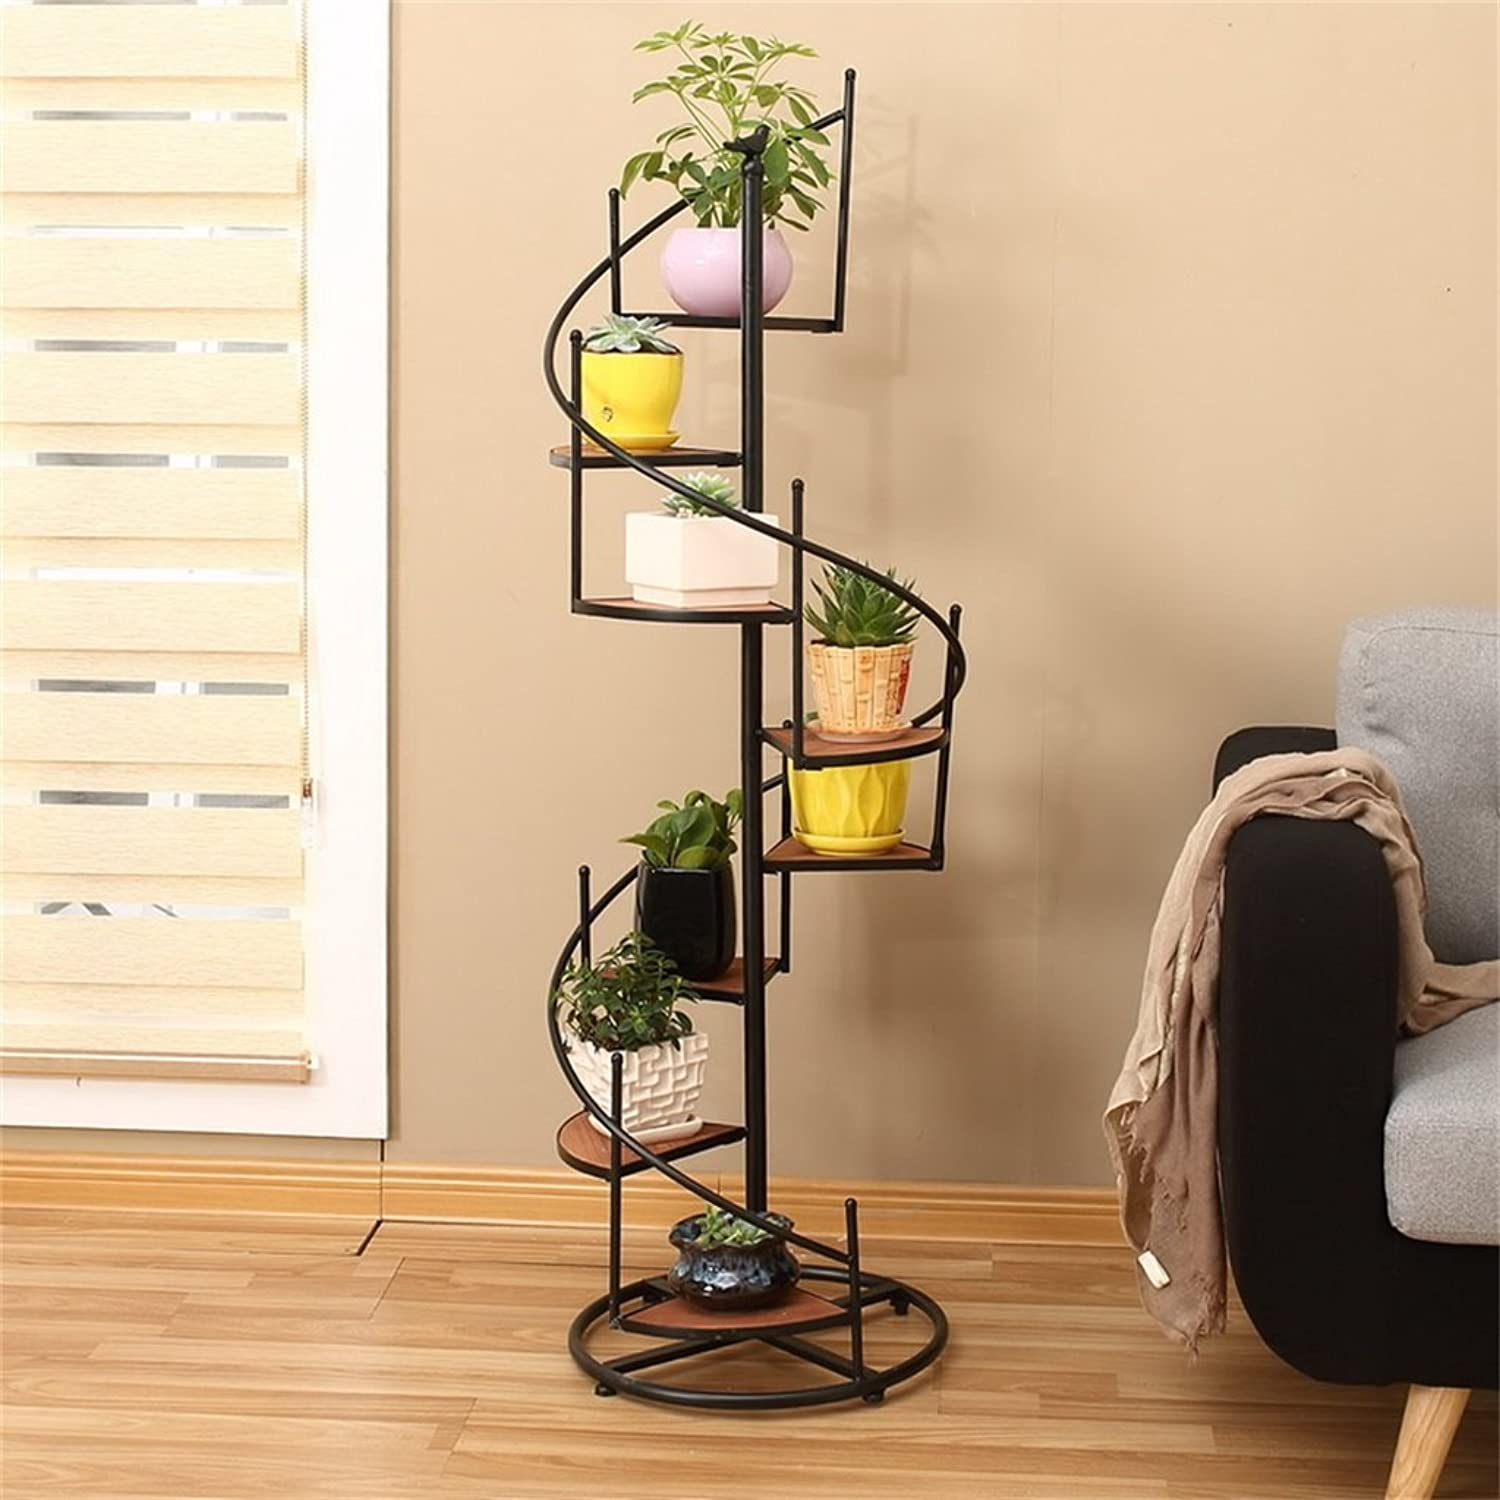 NYDZDM Retro Iron and Solid Wood Multilayer Floor Flower Pot Stand for Balcony Living Room Stairs Corner Shelf Can Accommodate 8 Flower Pots (Size   23  9  55cm)